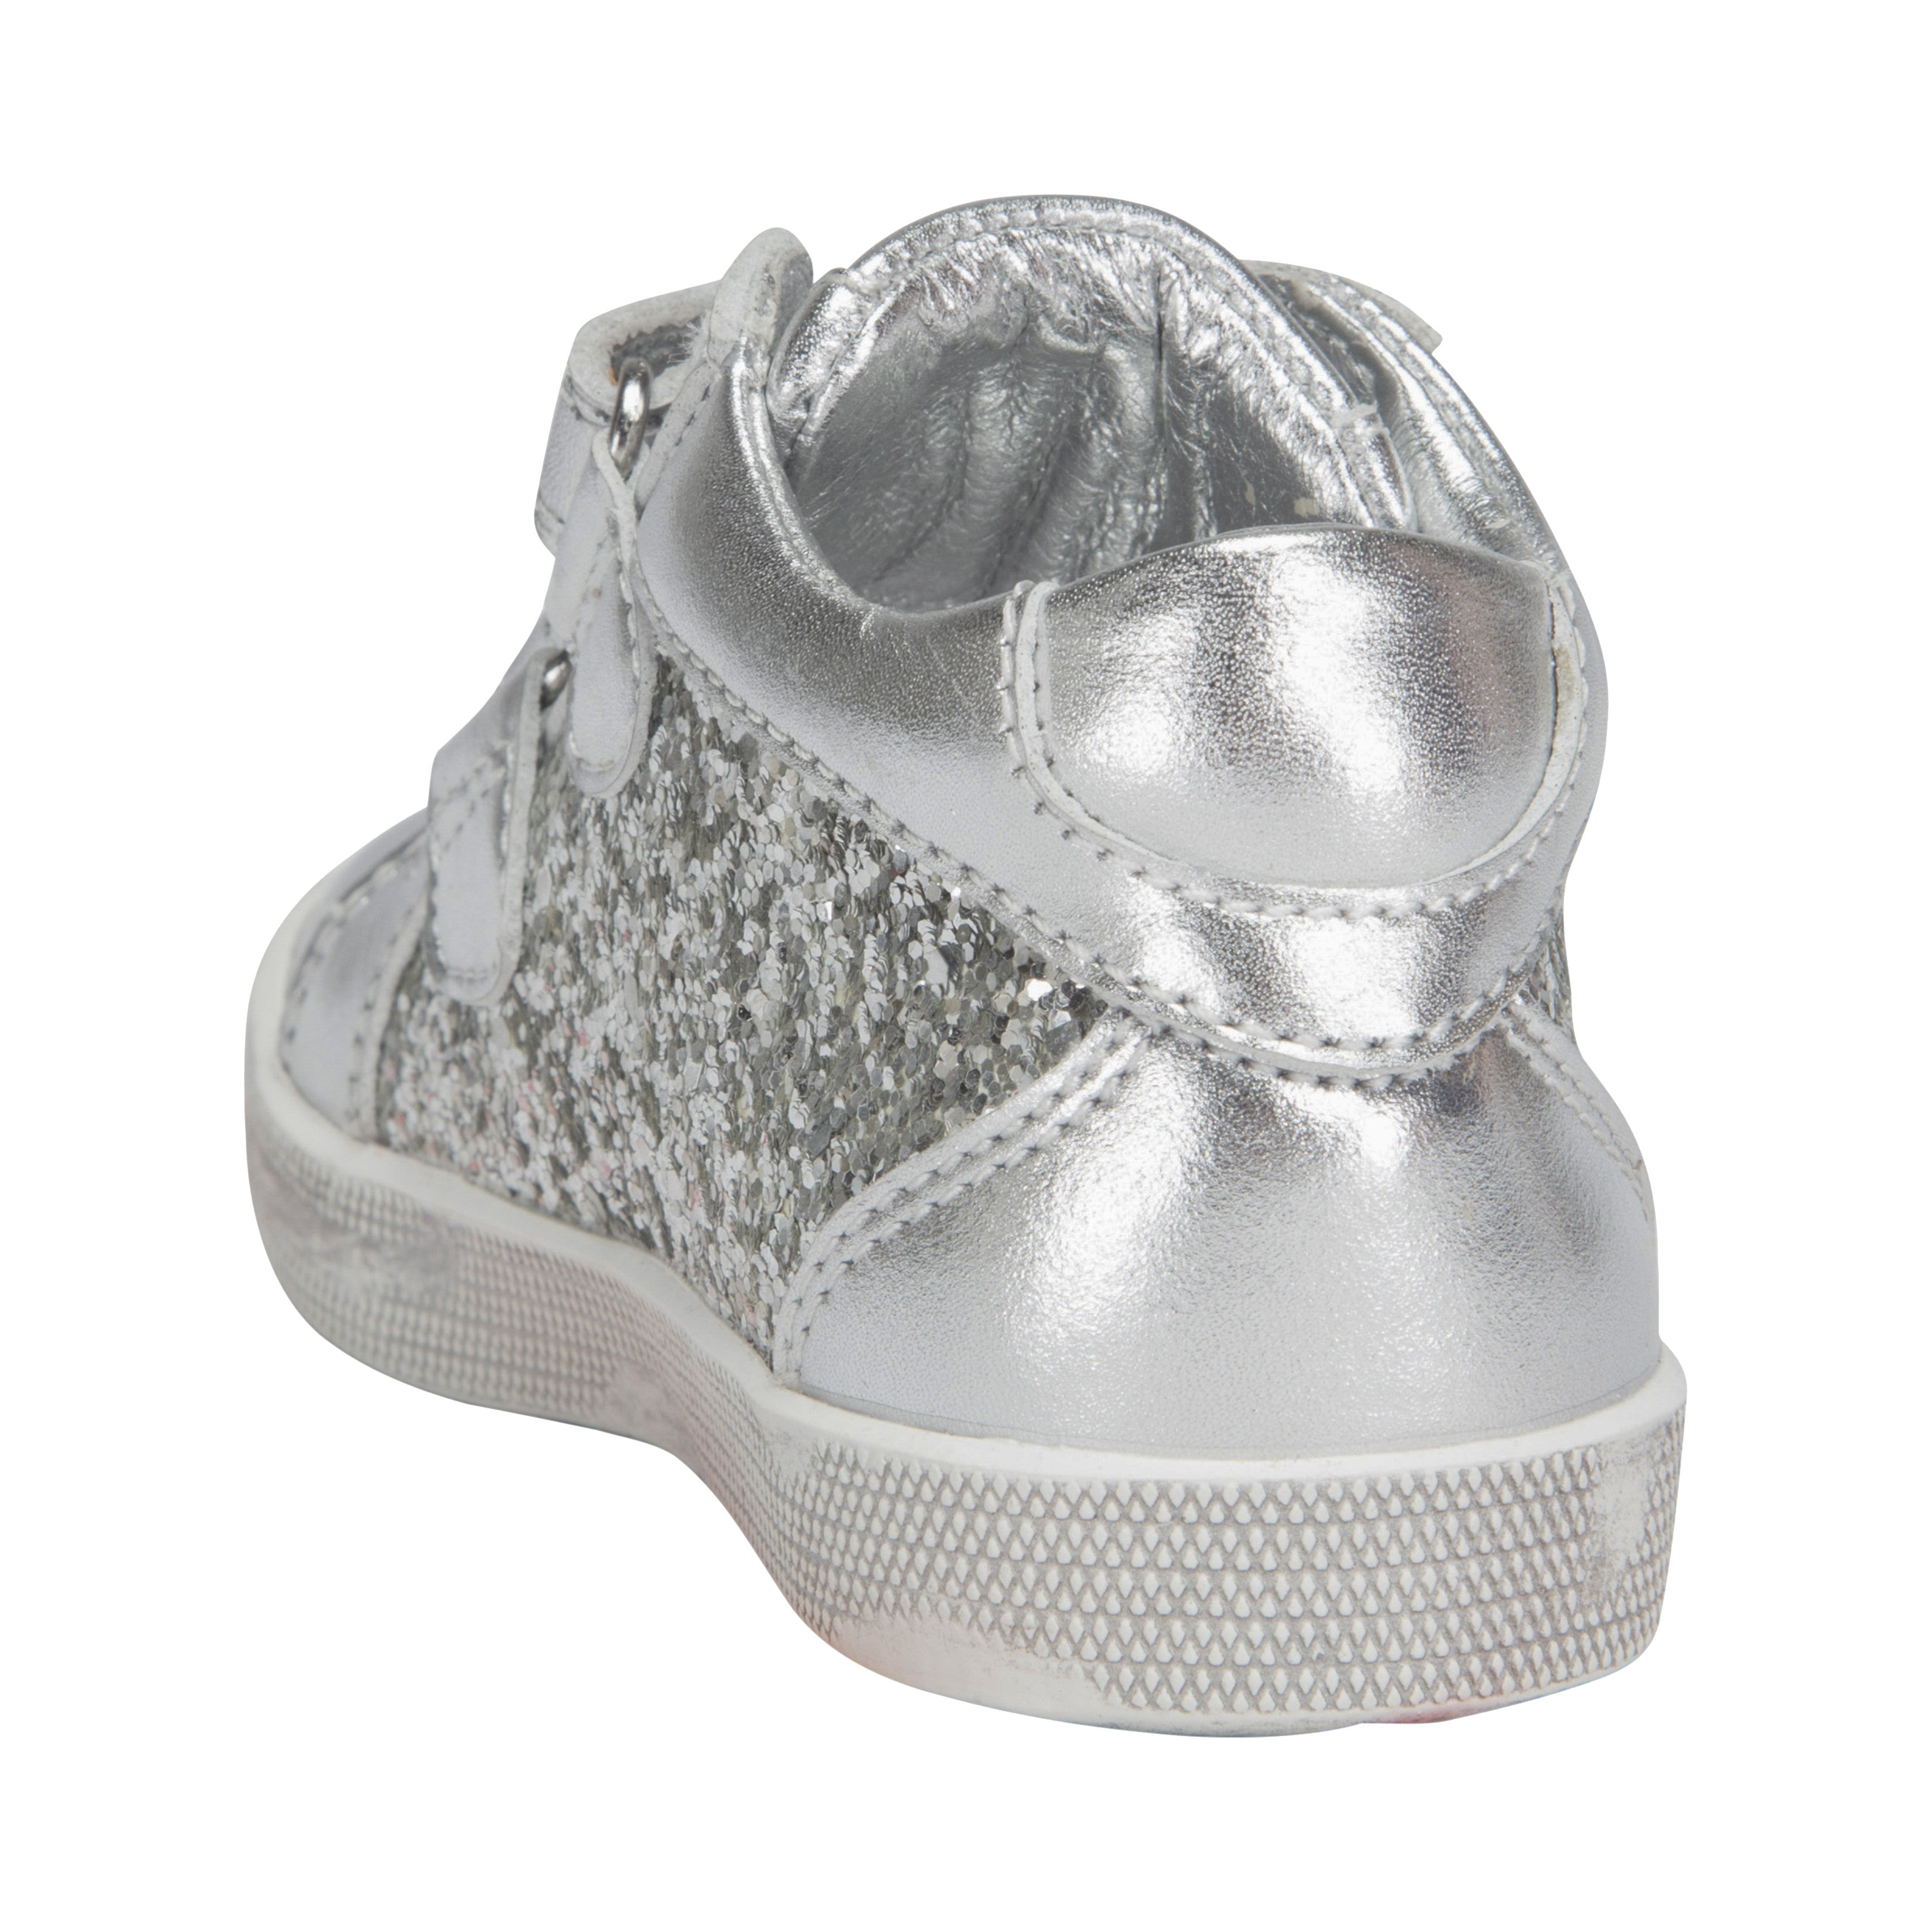 23e2ae51541 Petit by Sofie Schnoor - Baby Glitter Sneakers m. velcro - Silver ...